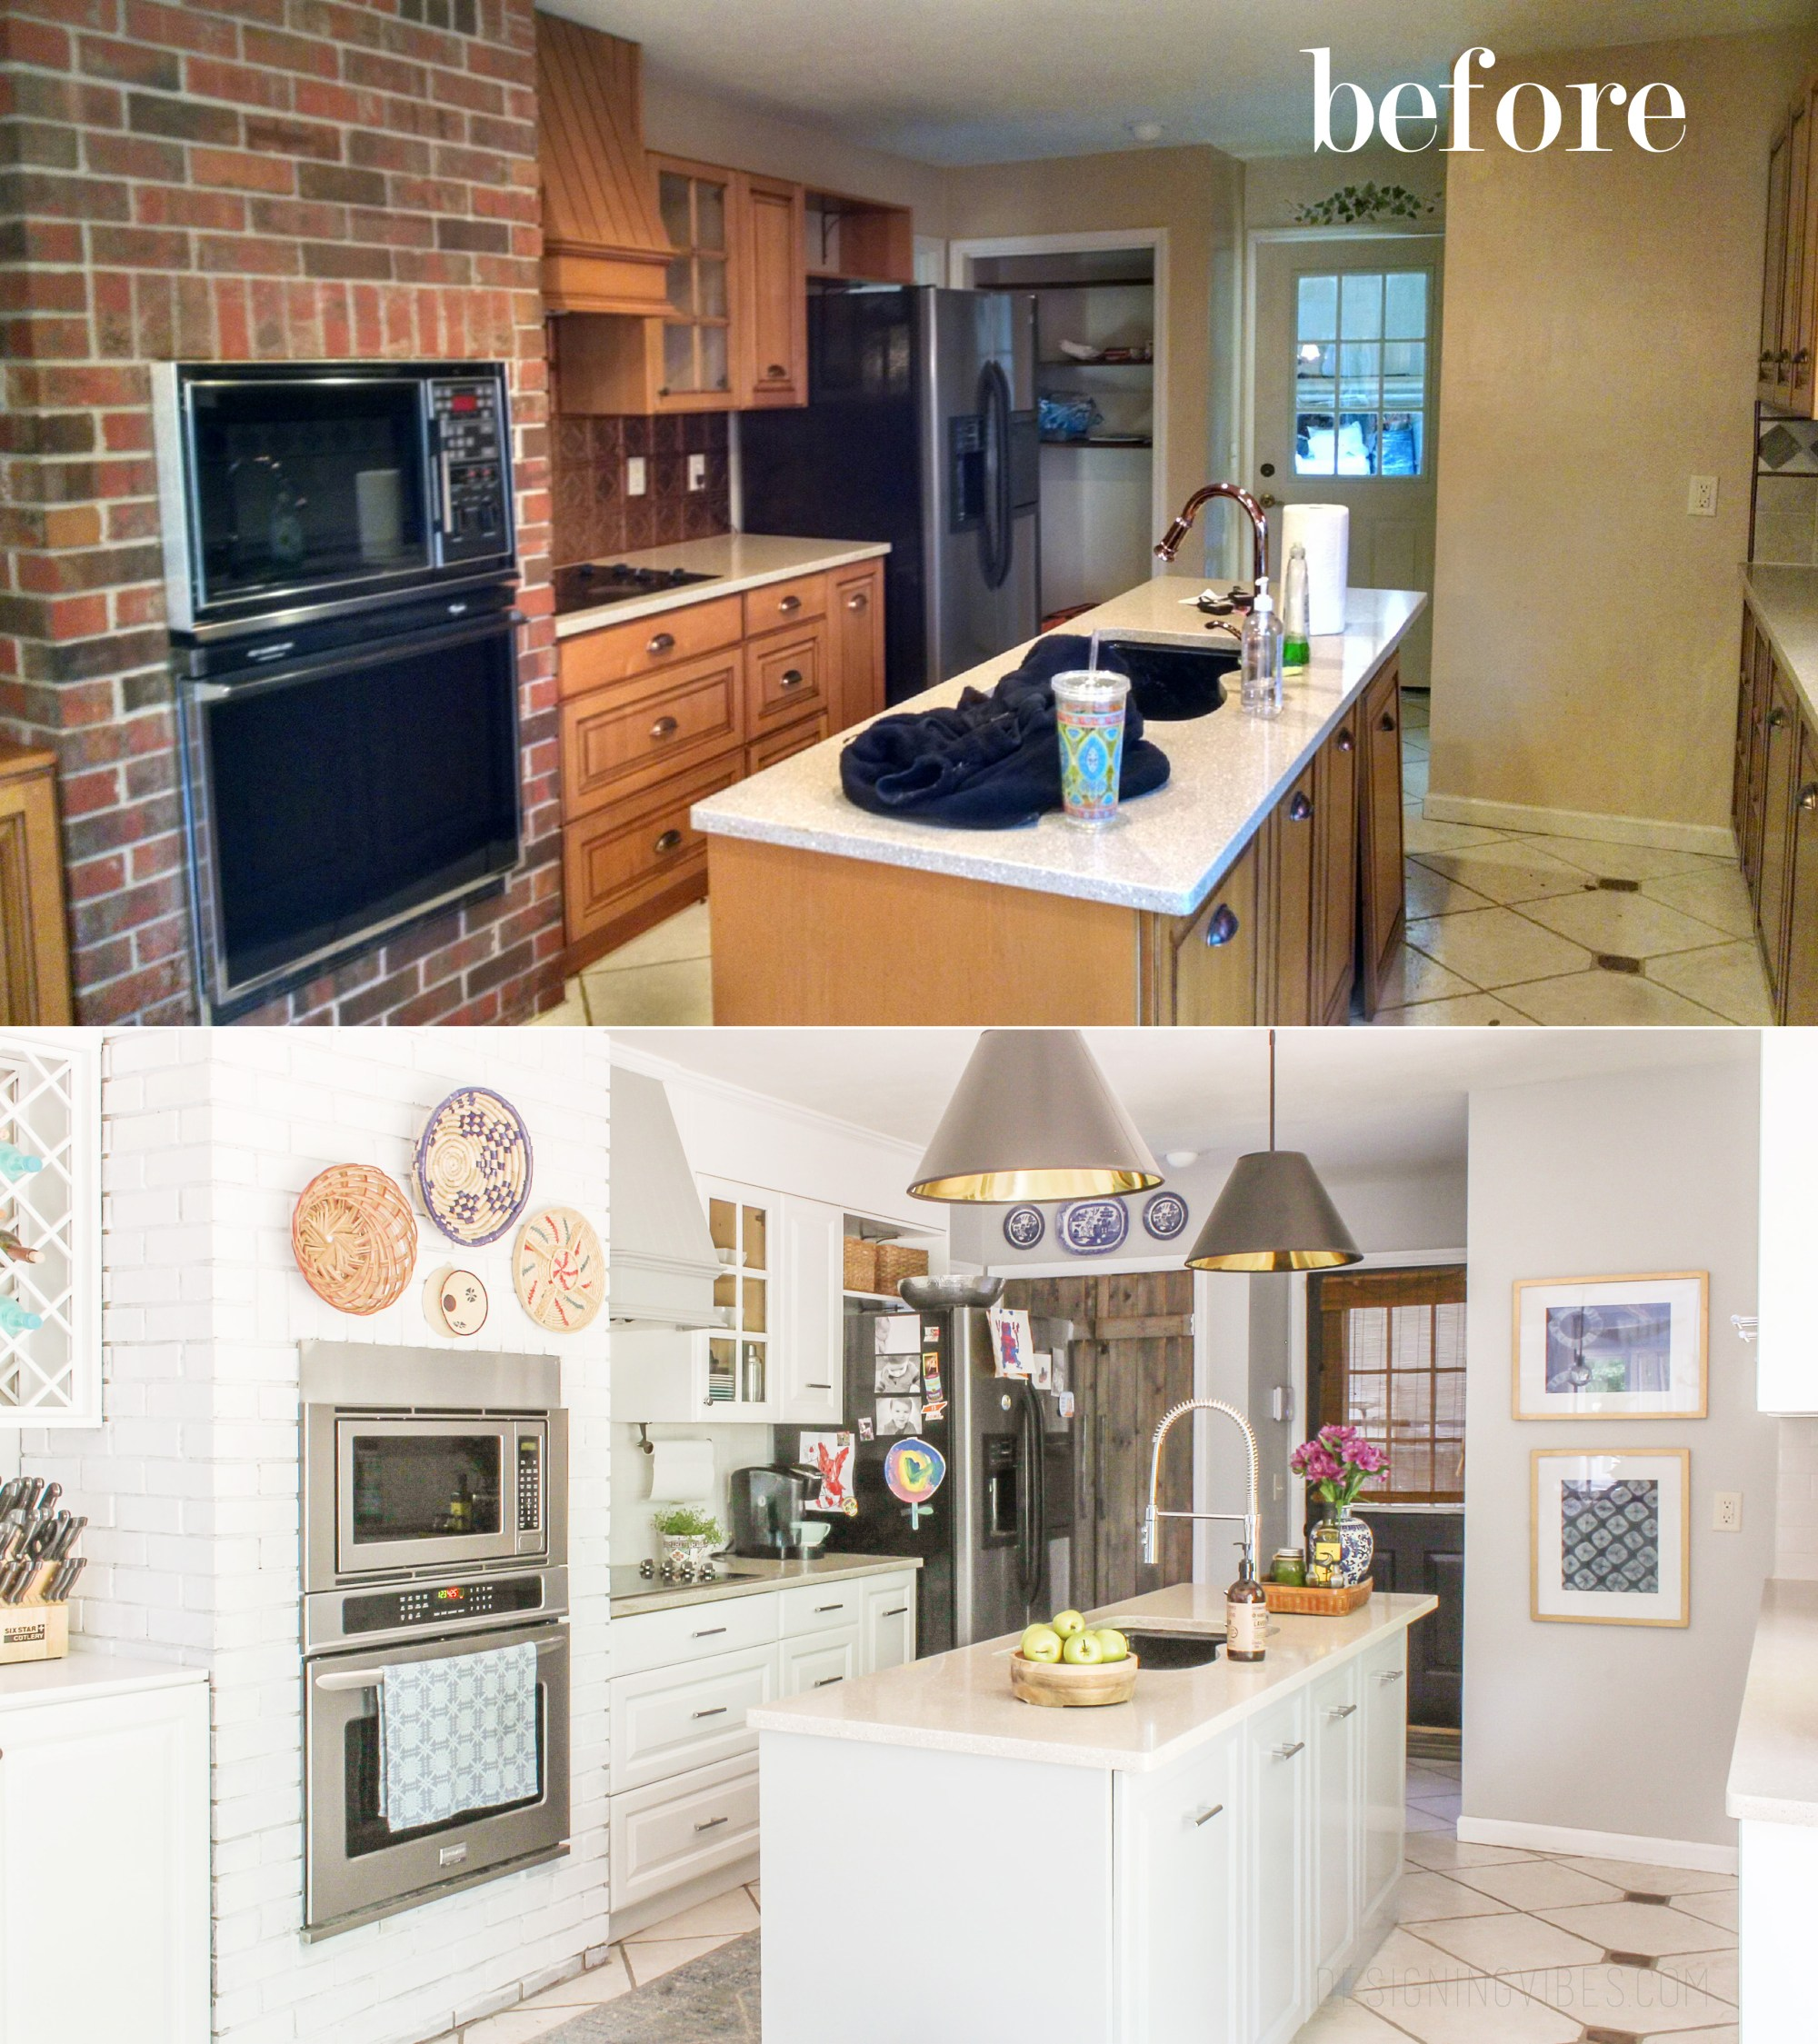 5 diy budget kitchen renovations diy thought for Kitchen remodels on a budget photos